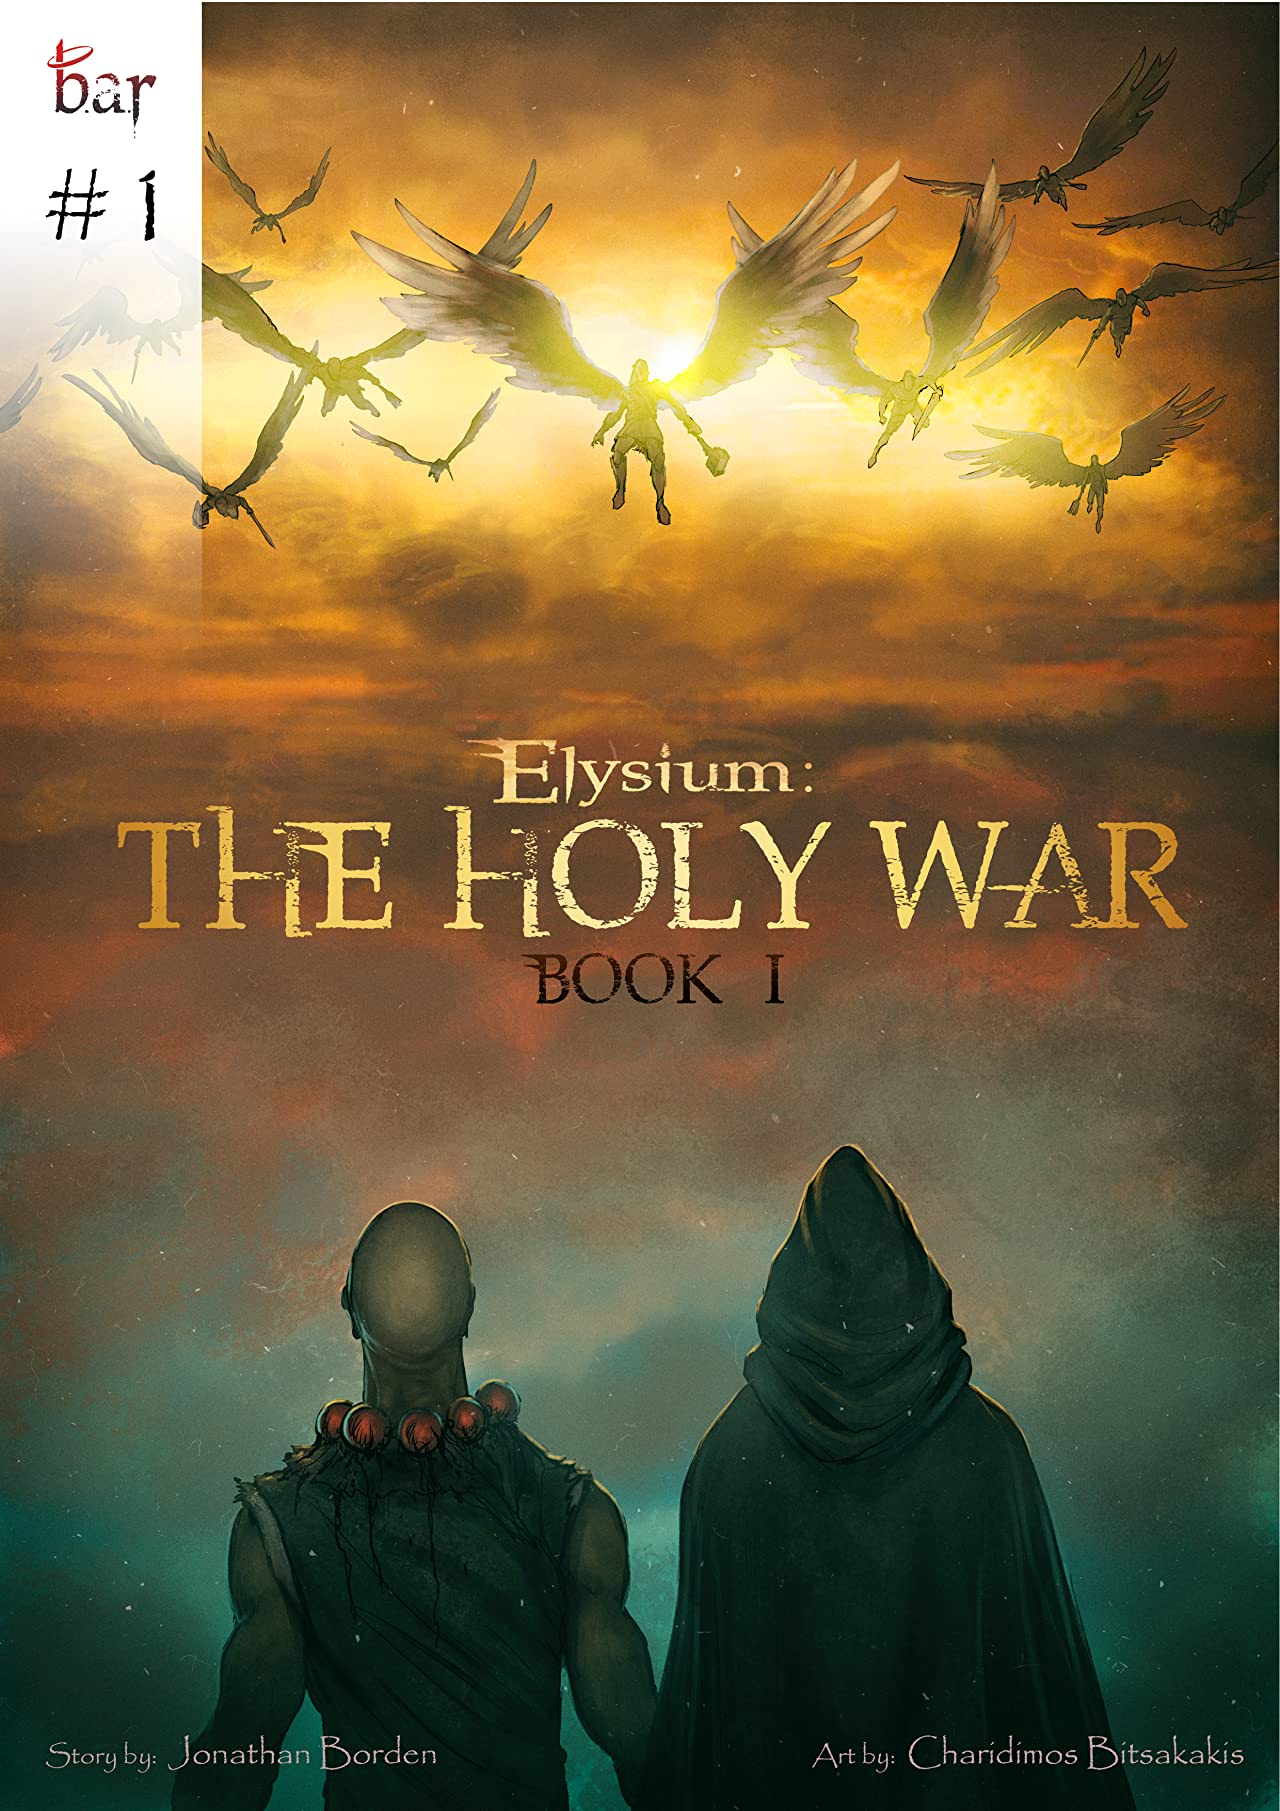 Elysium: The Holy War #1